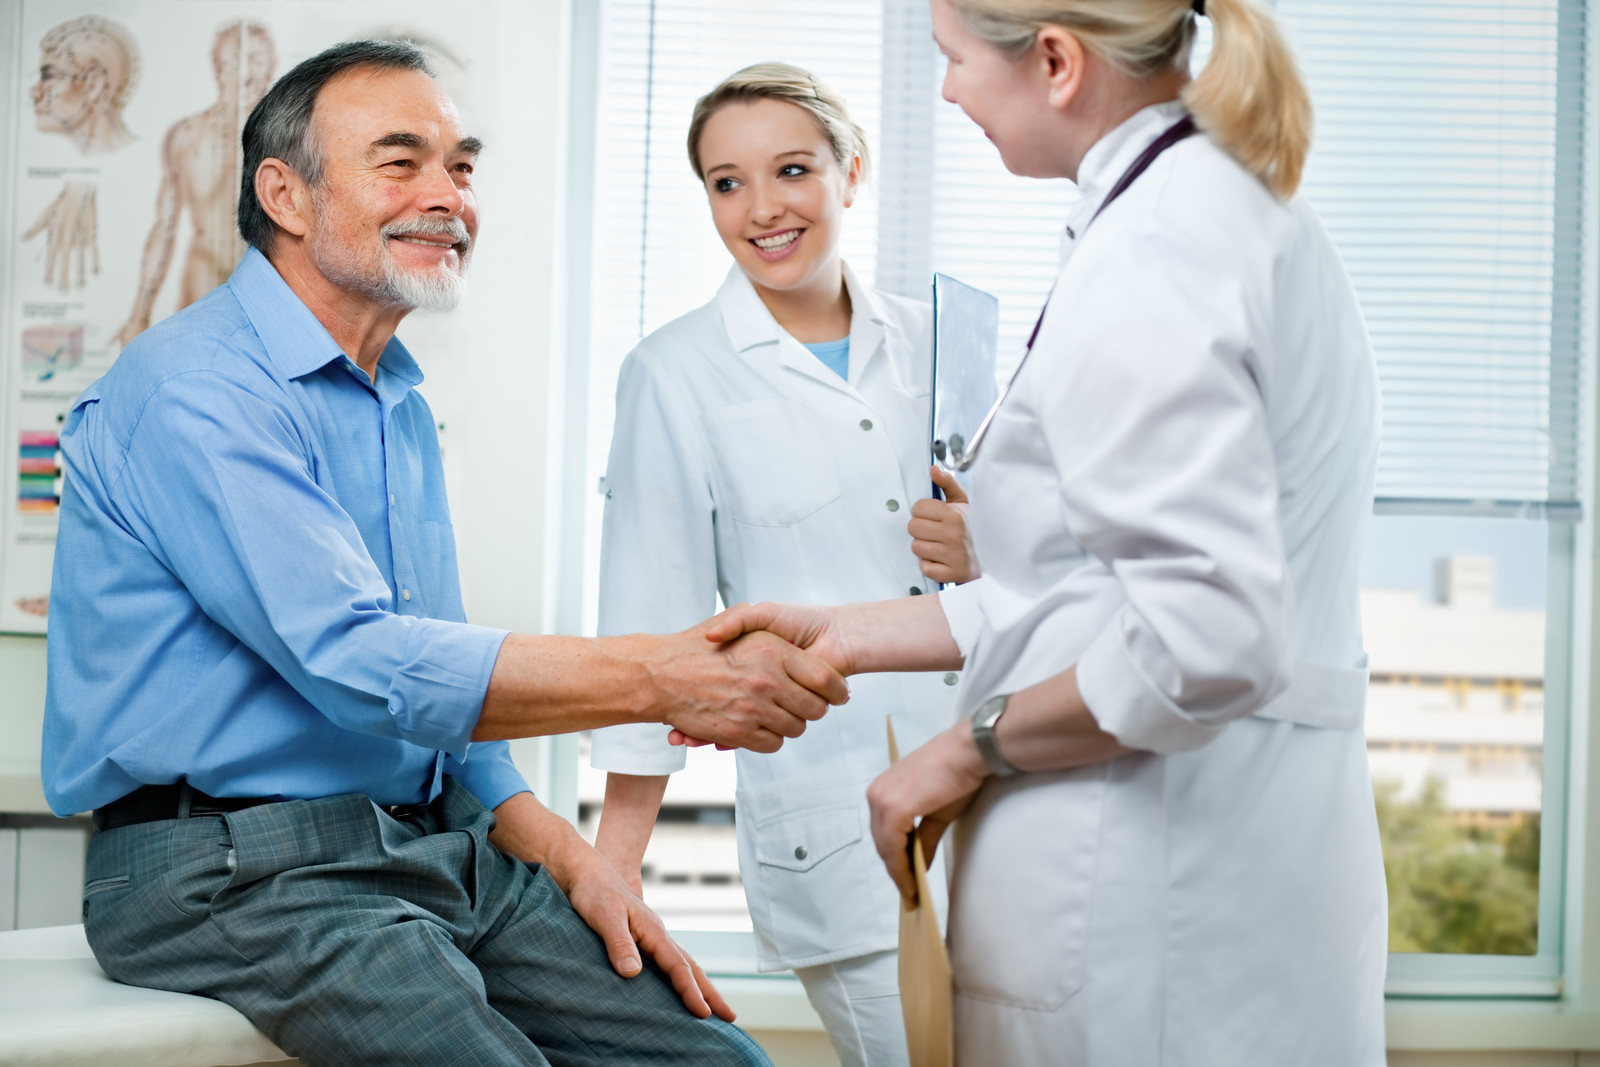 Senior man smiling and shaking hands with a female doctor sitting in an exam room.